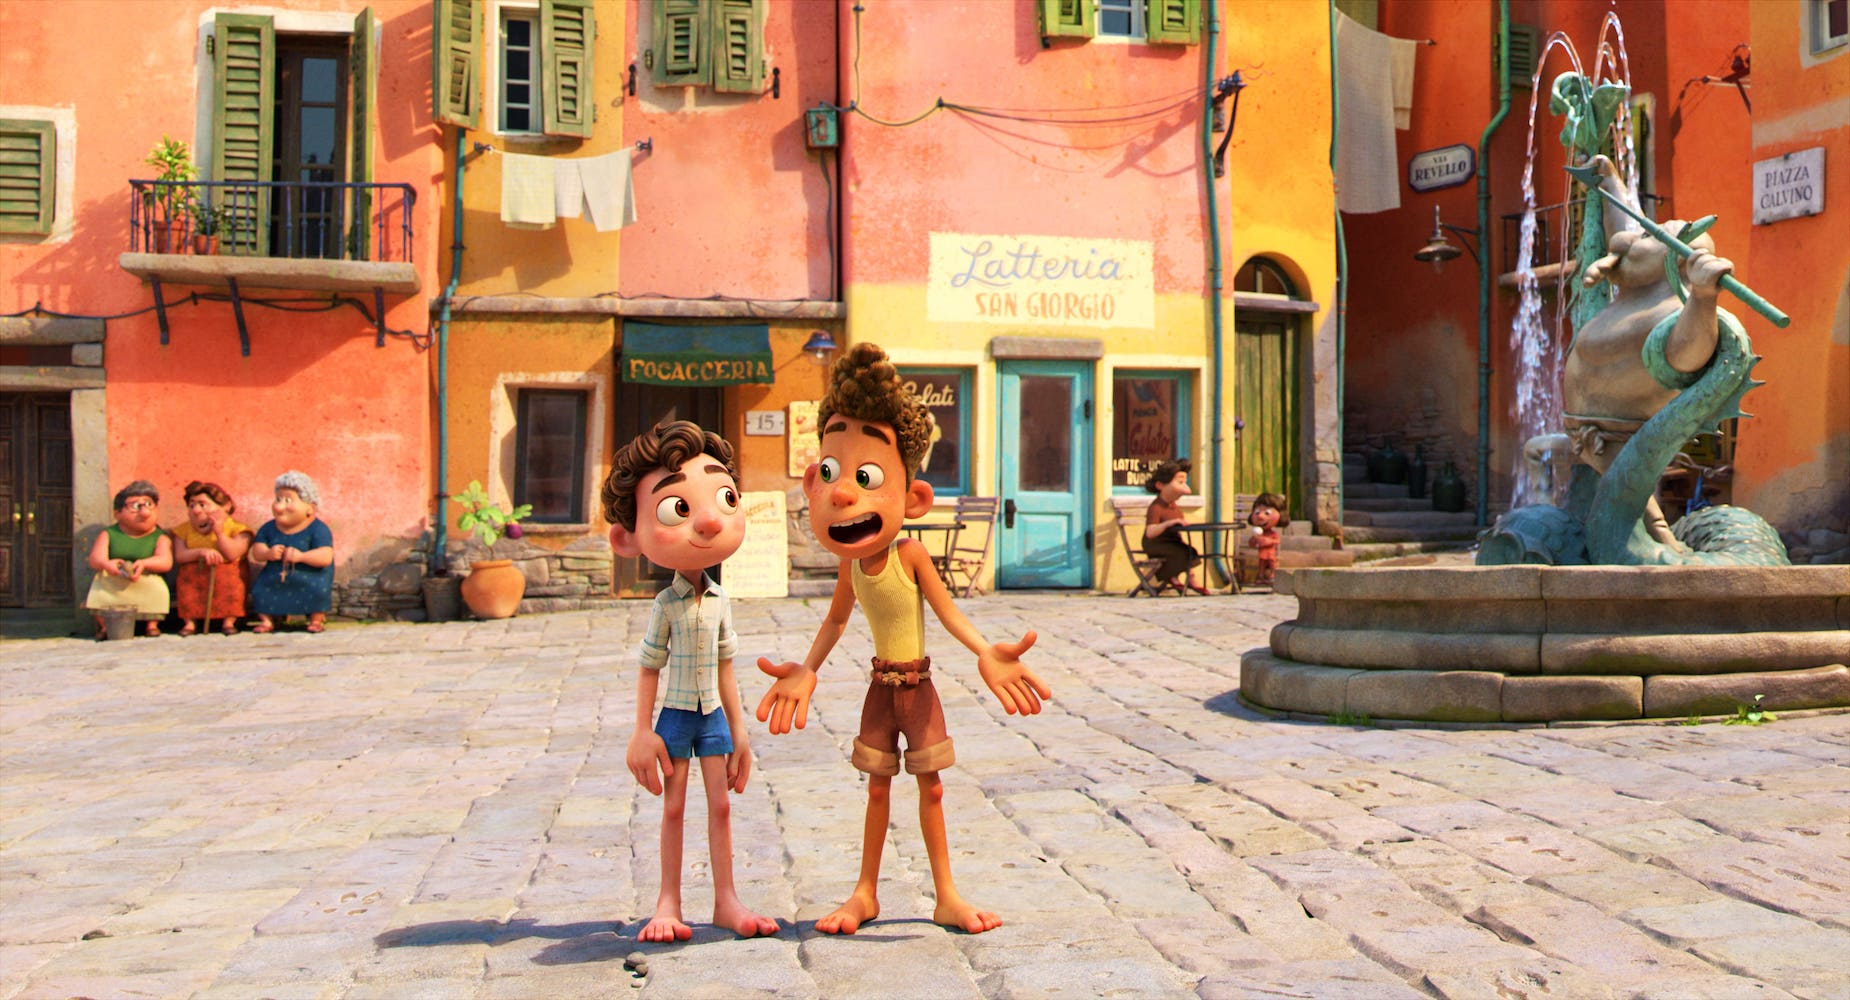 Set in a beautiful seaside town on the Italian Riviera, Disney and Pixar's Luca is a coming-of-age story about a boy and his newfound best friend experiencing an unforgettable summer filled with gelato, pasta and endless scooter rides. But their fun is threatened by a secret: they are sea monsters from another world. Luca is directed by Enrico Casarosa (La Luna) and produced by Andrea Warren (Lava, Cars 3). © 2021 Disney/Pixar. All Rights Reserved.